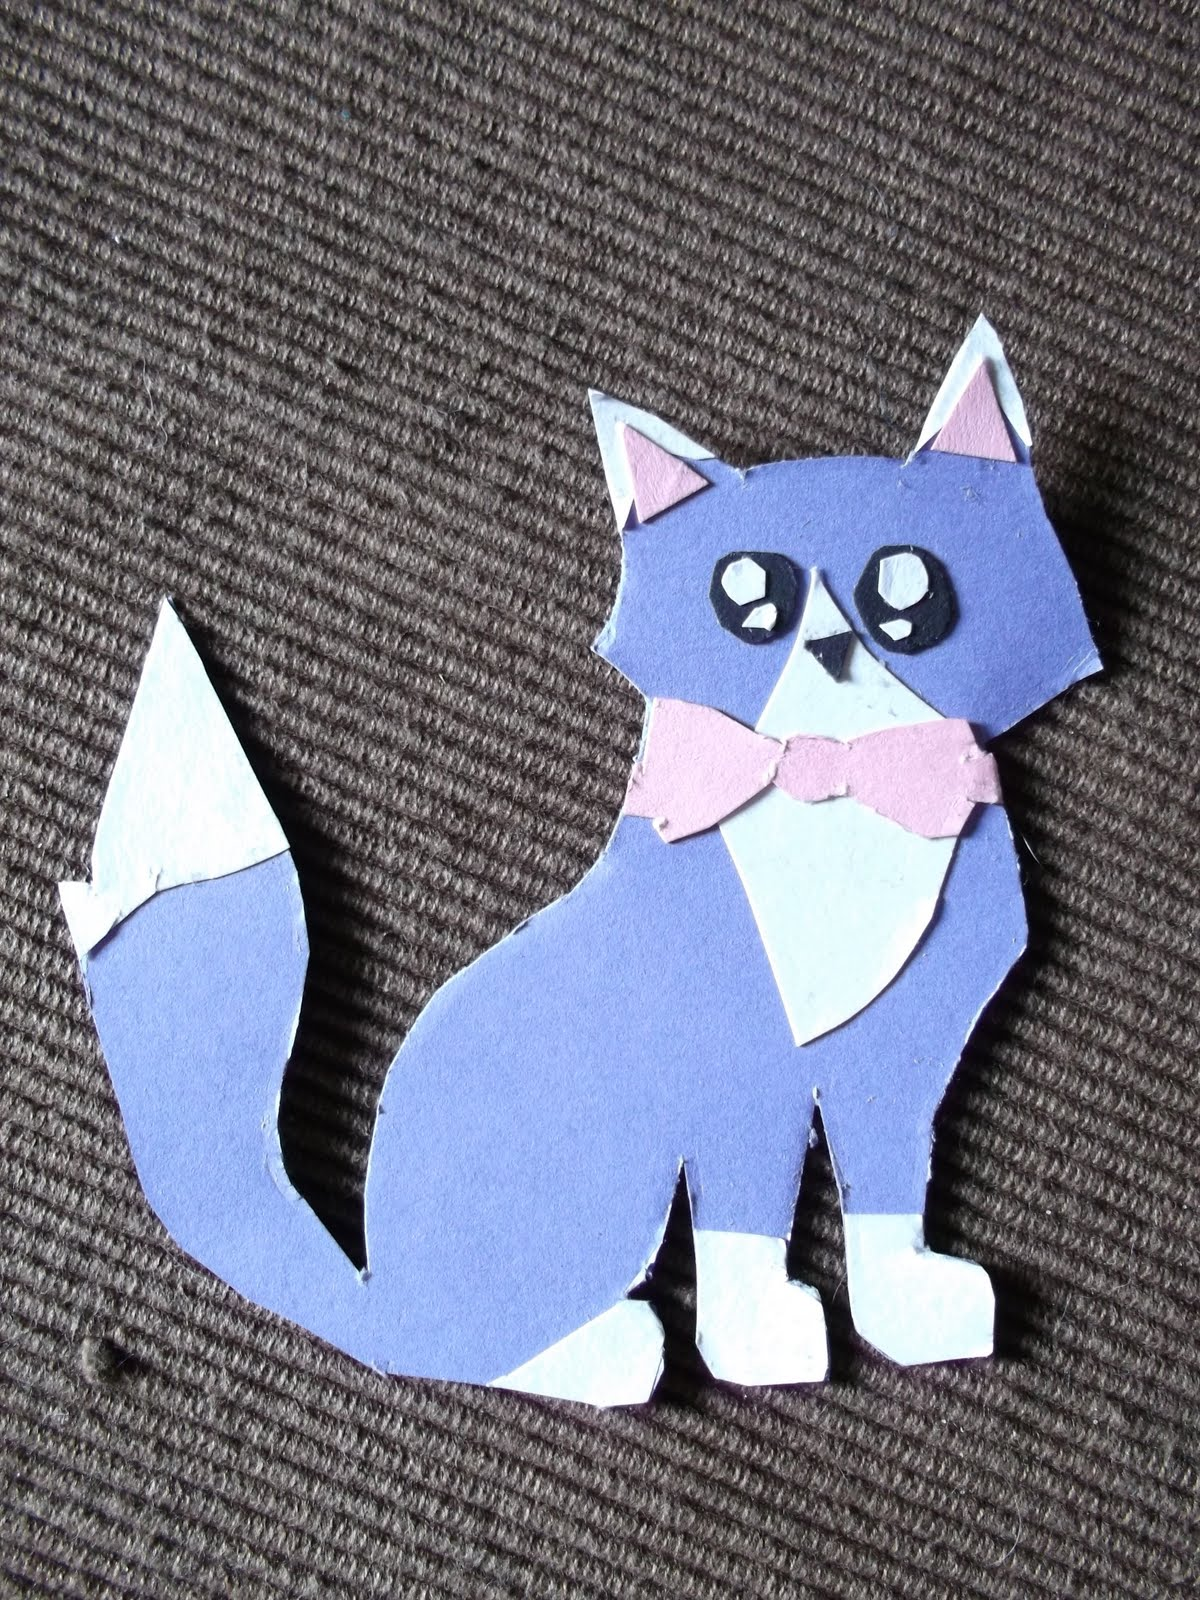 Exploring Animation Paper Cut Outs